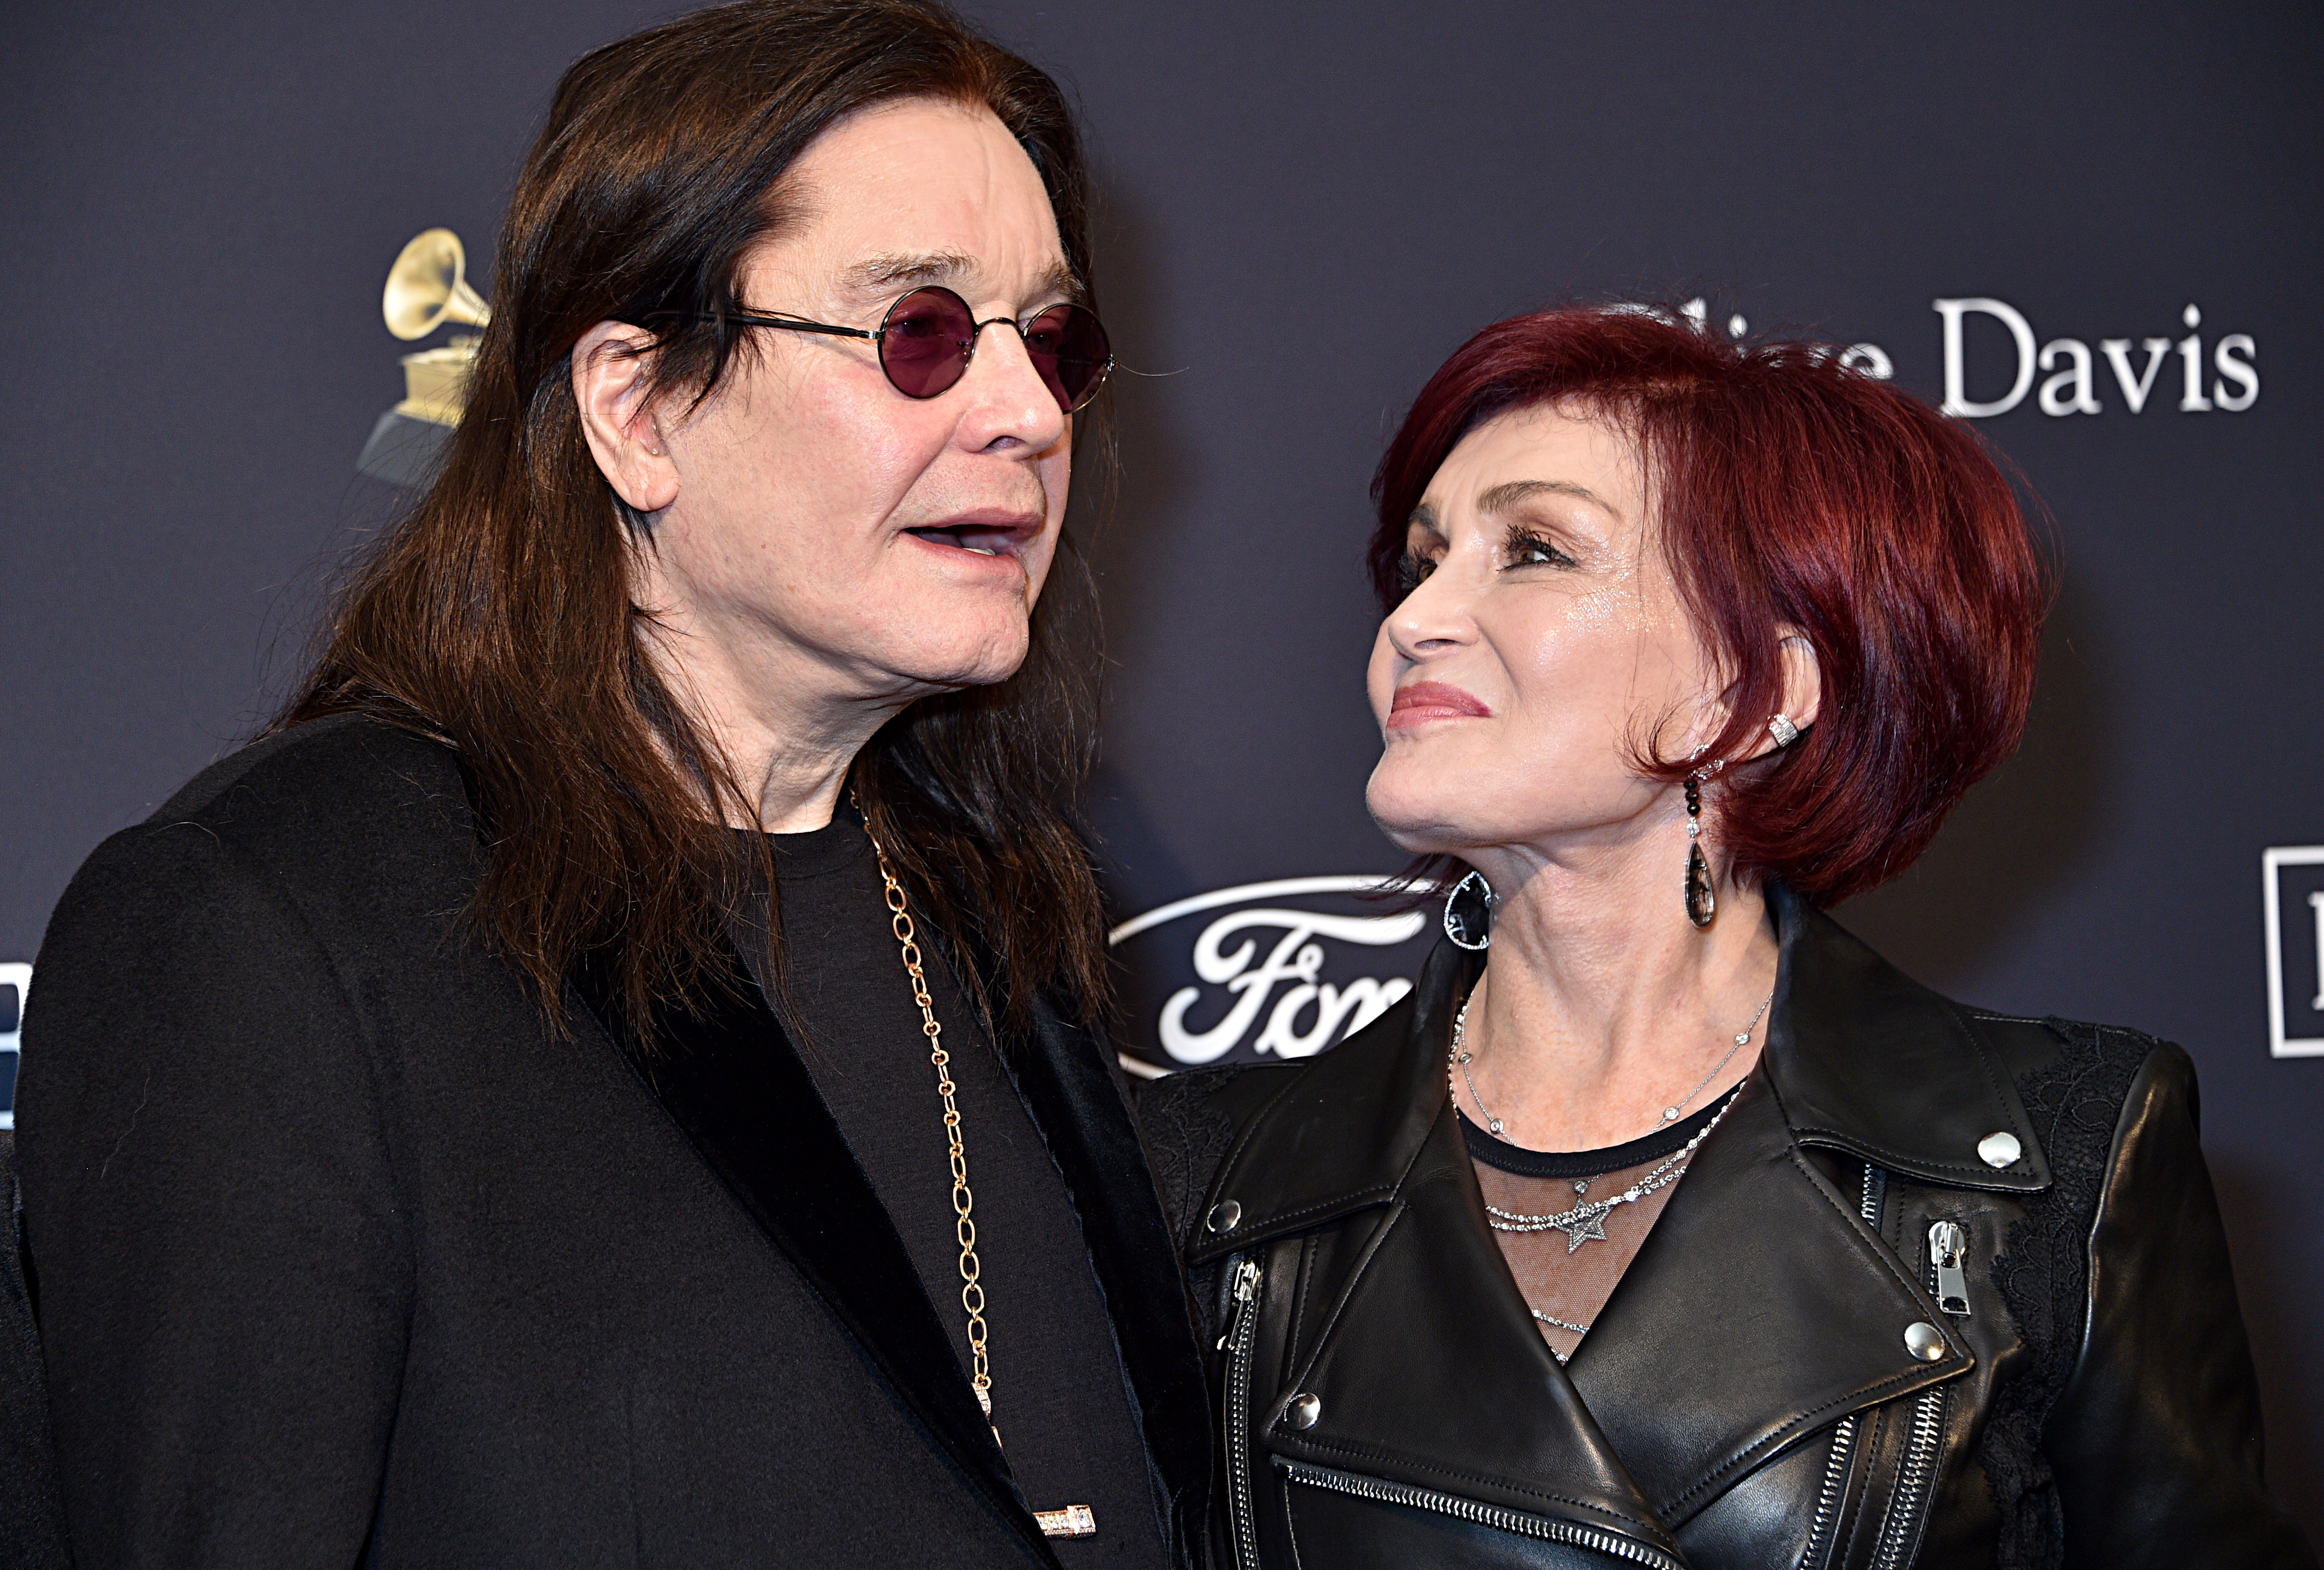 Ozzy Osbourne says his greatest regret is cheating on wife Sharon: 'I'm lucky she didn't leave me'